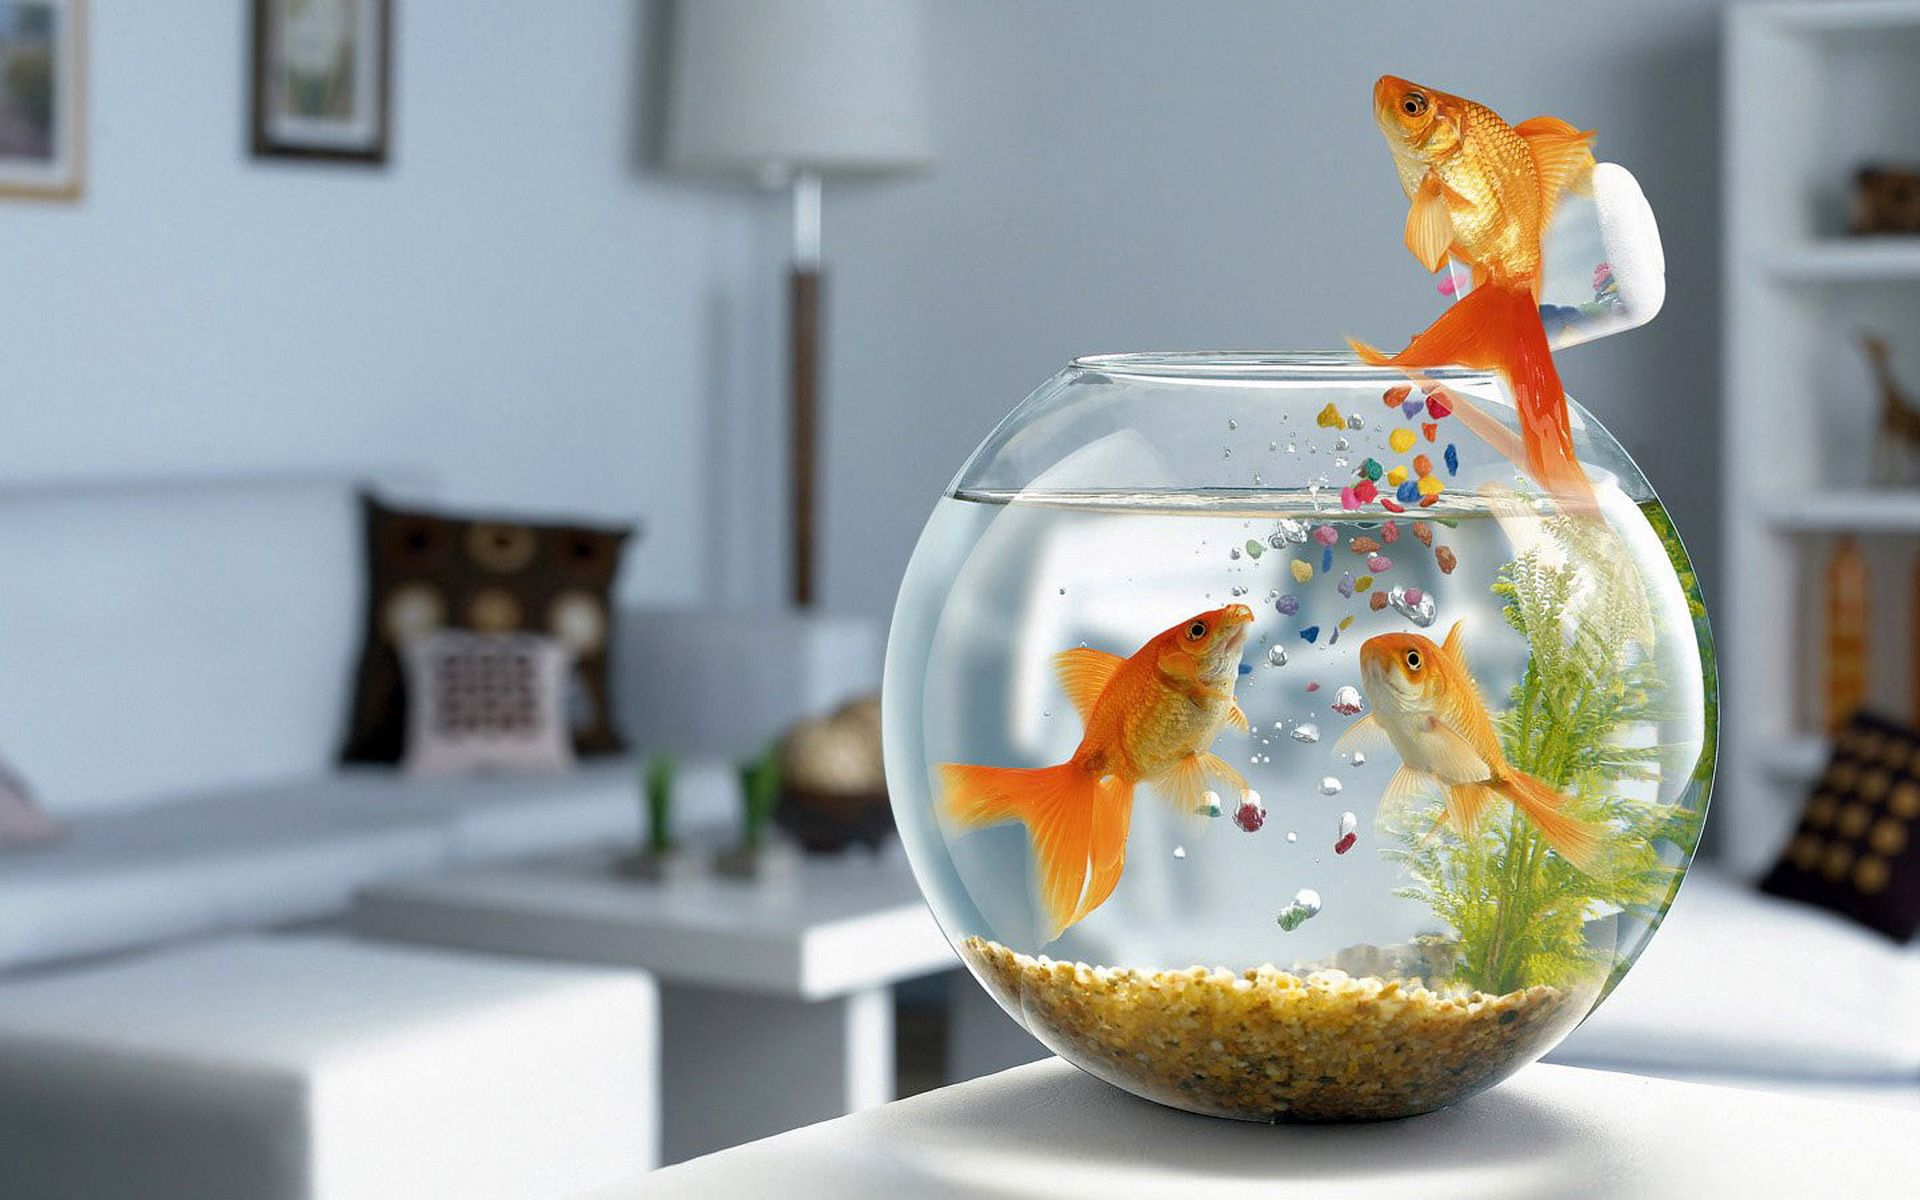 108178 download wallpaper Animals, Aquarium, To Swim, Swim, Table, Glass, Fishes screensavers and pictures for free